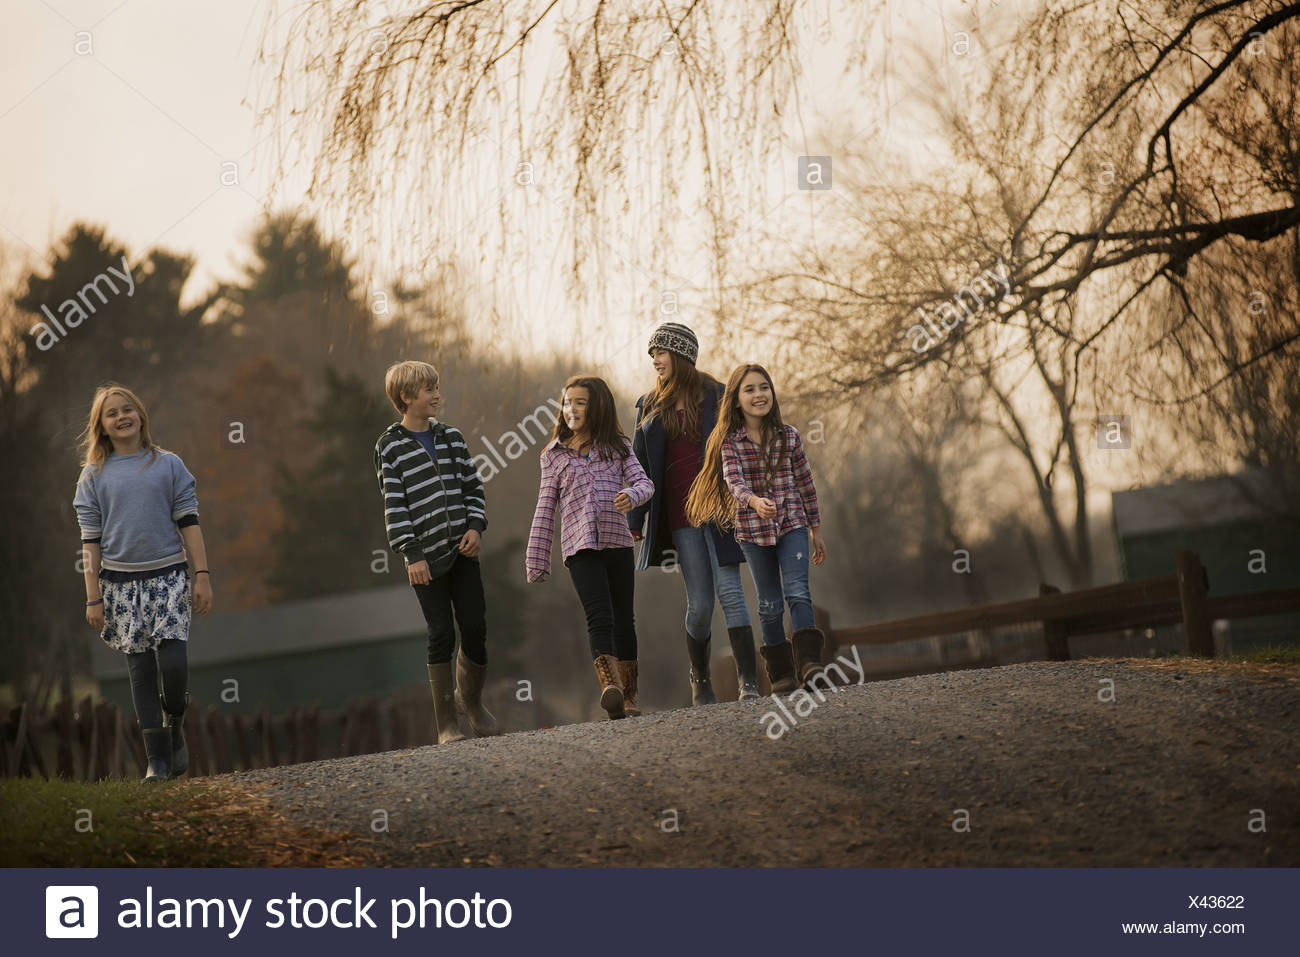 A group of children a boy and four girls walking along a path on a winter's day An organic farm - Stock Image